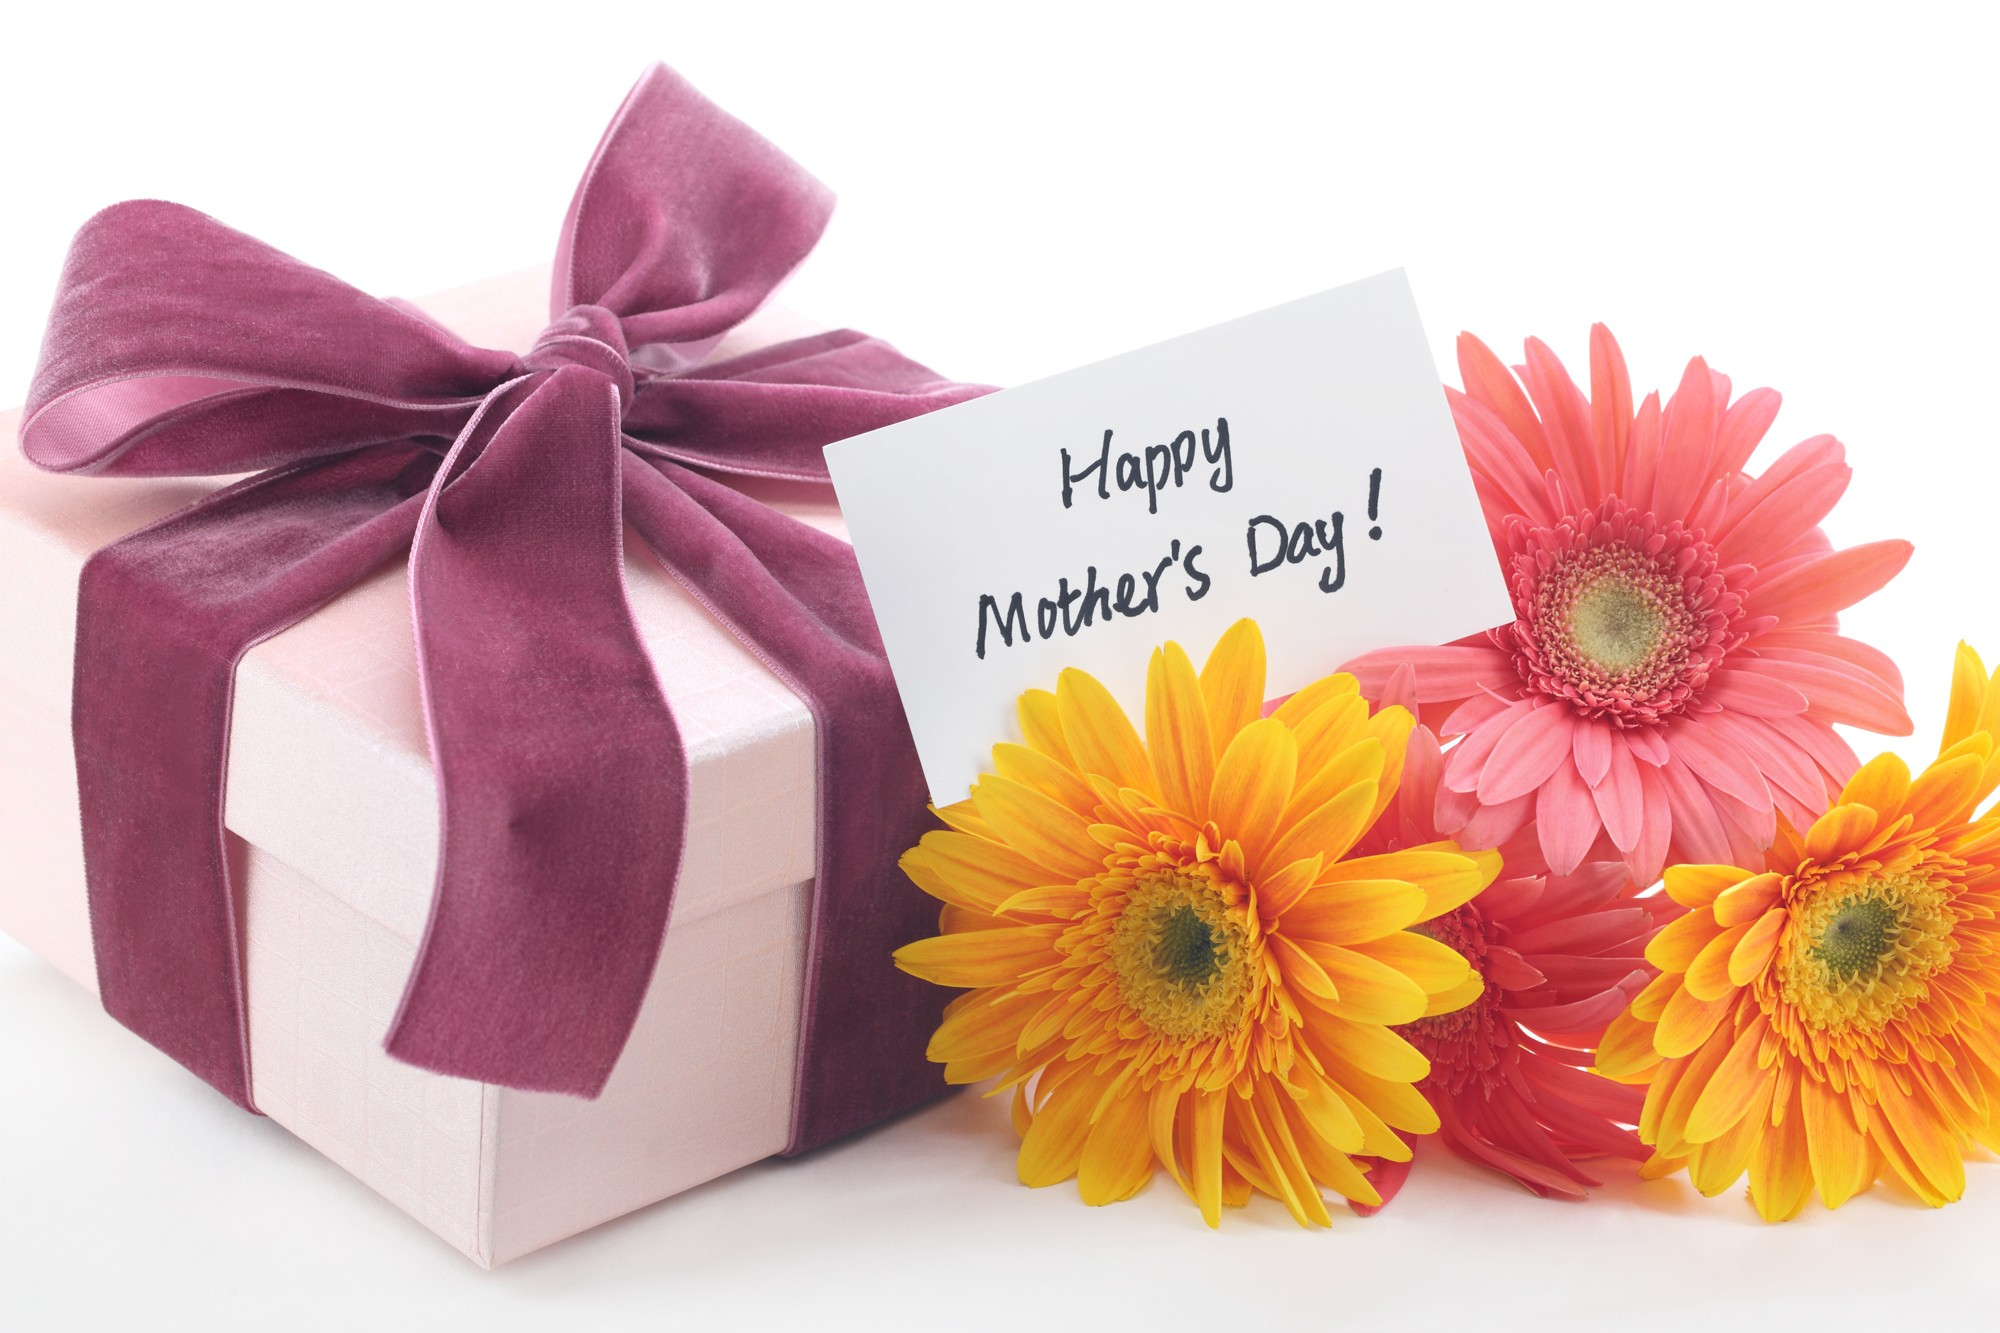 Mothers Day Special Greetings Flower Gifts Download